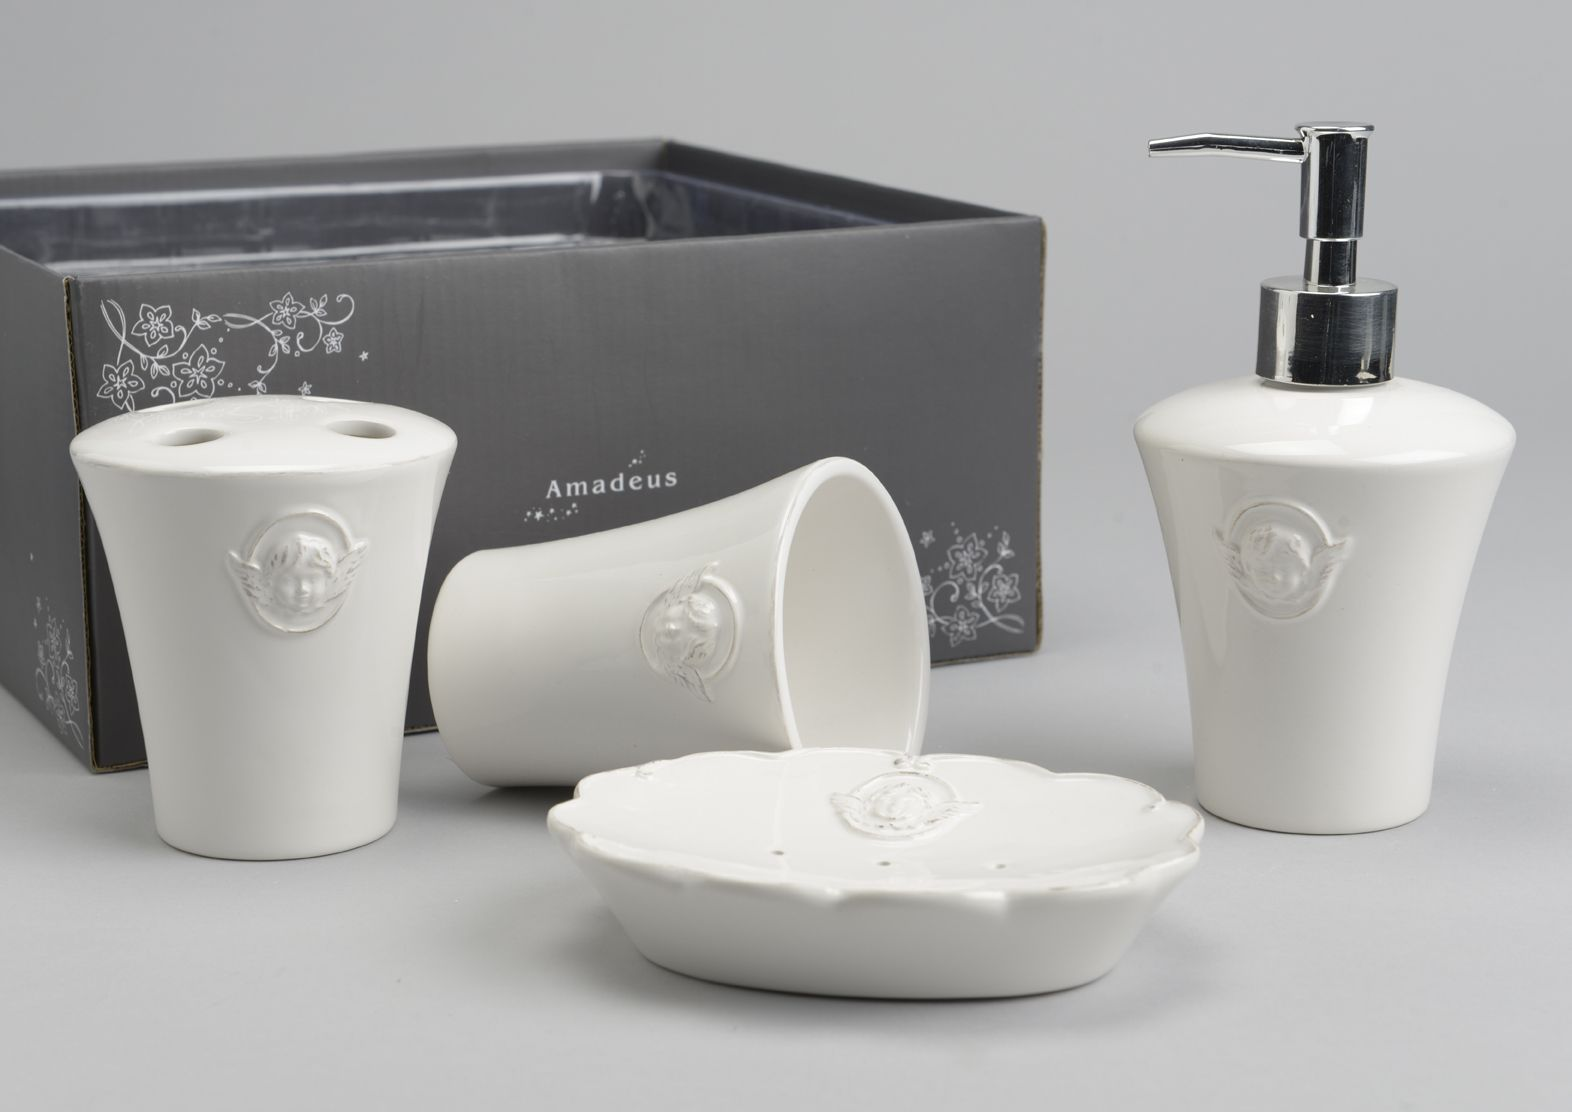 Accessori Bagno Le Bains : Set accessori bagno chanel shabby chic